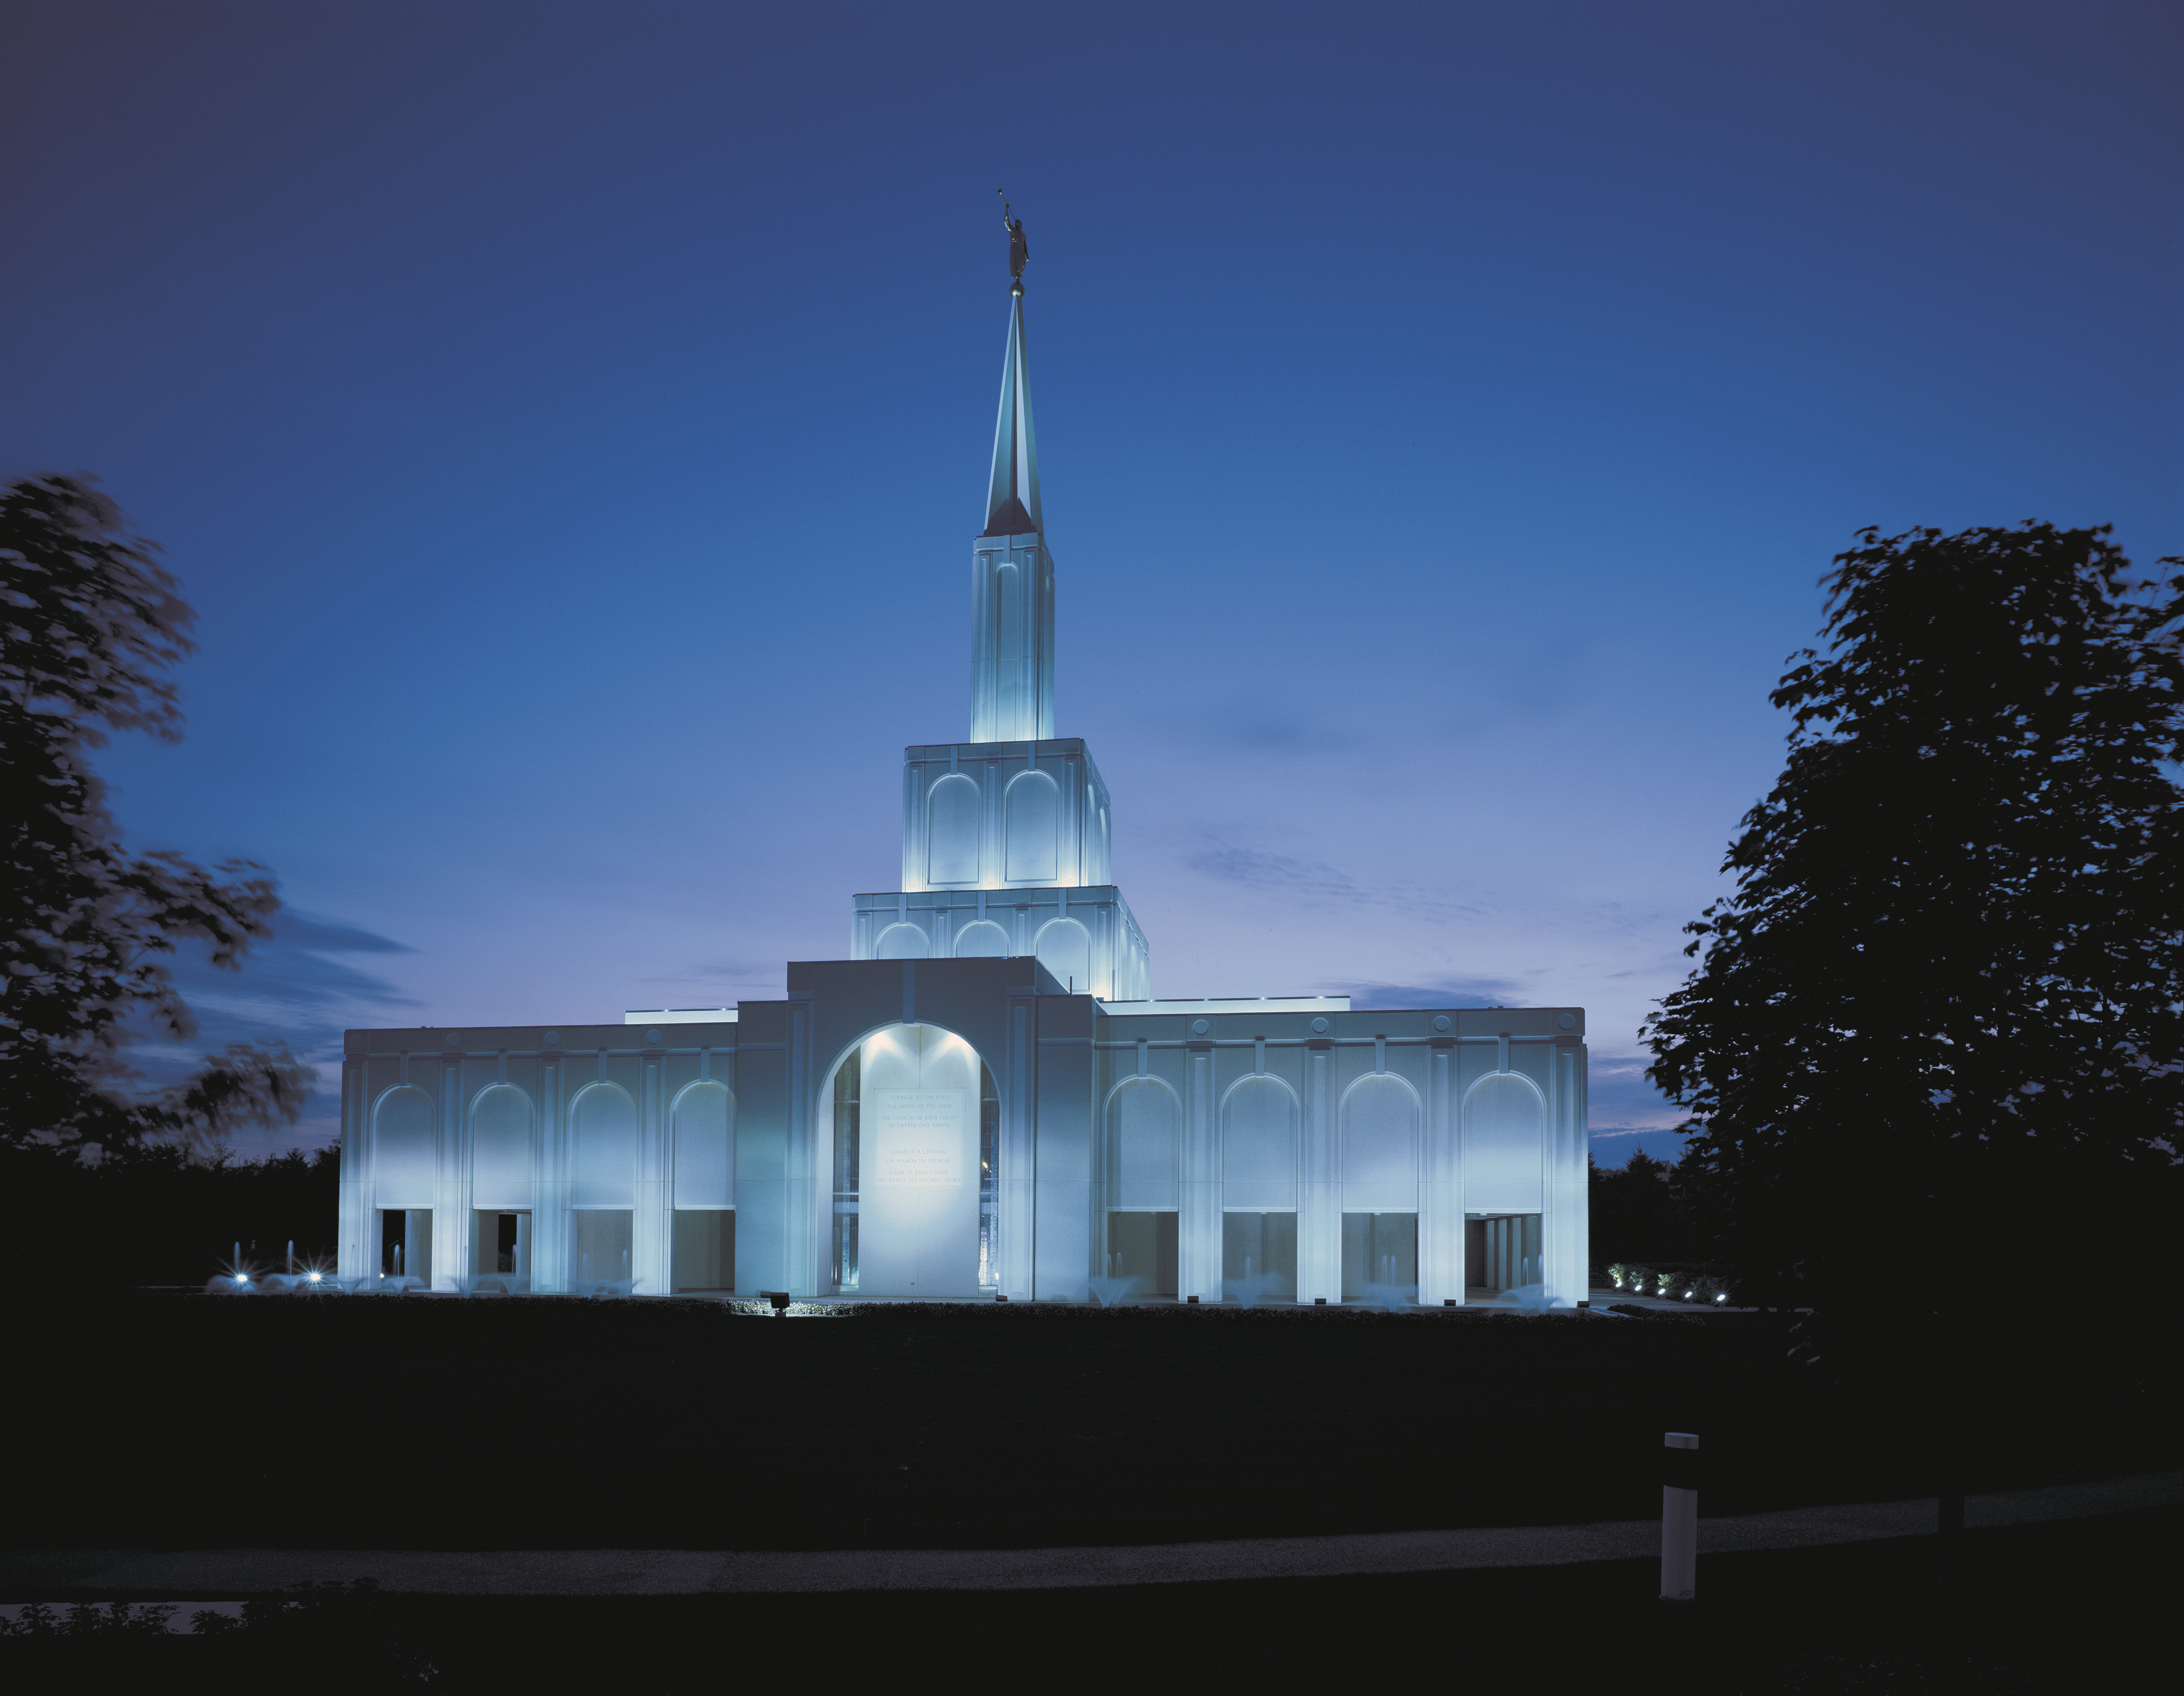 The Toronto Ontario Temple in the evening, including the entrance and scenery.